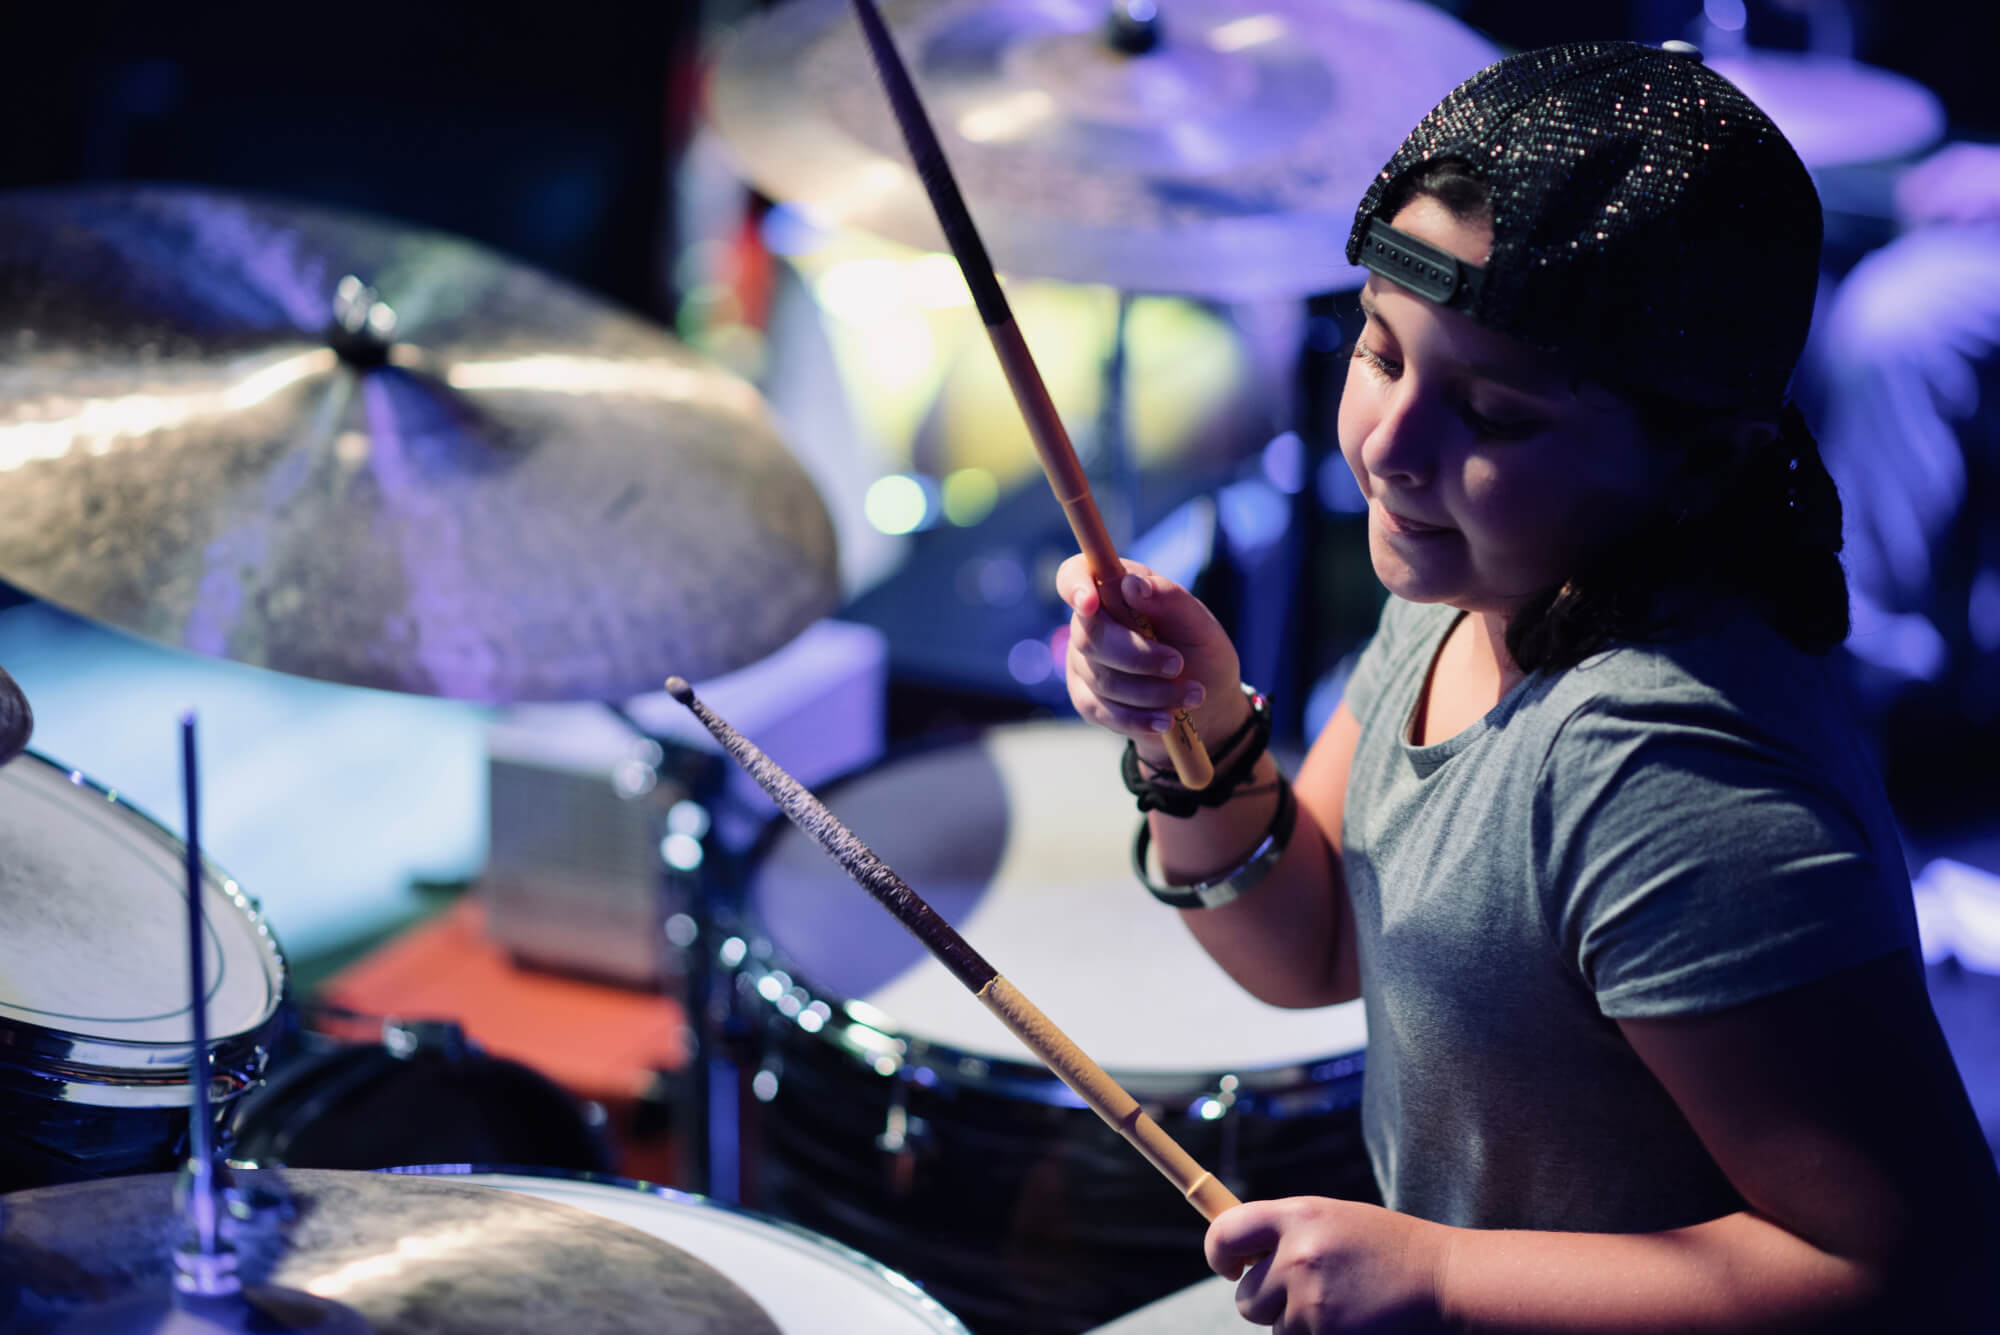 School of Rock East Cobb drummer student